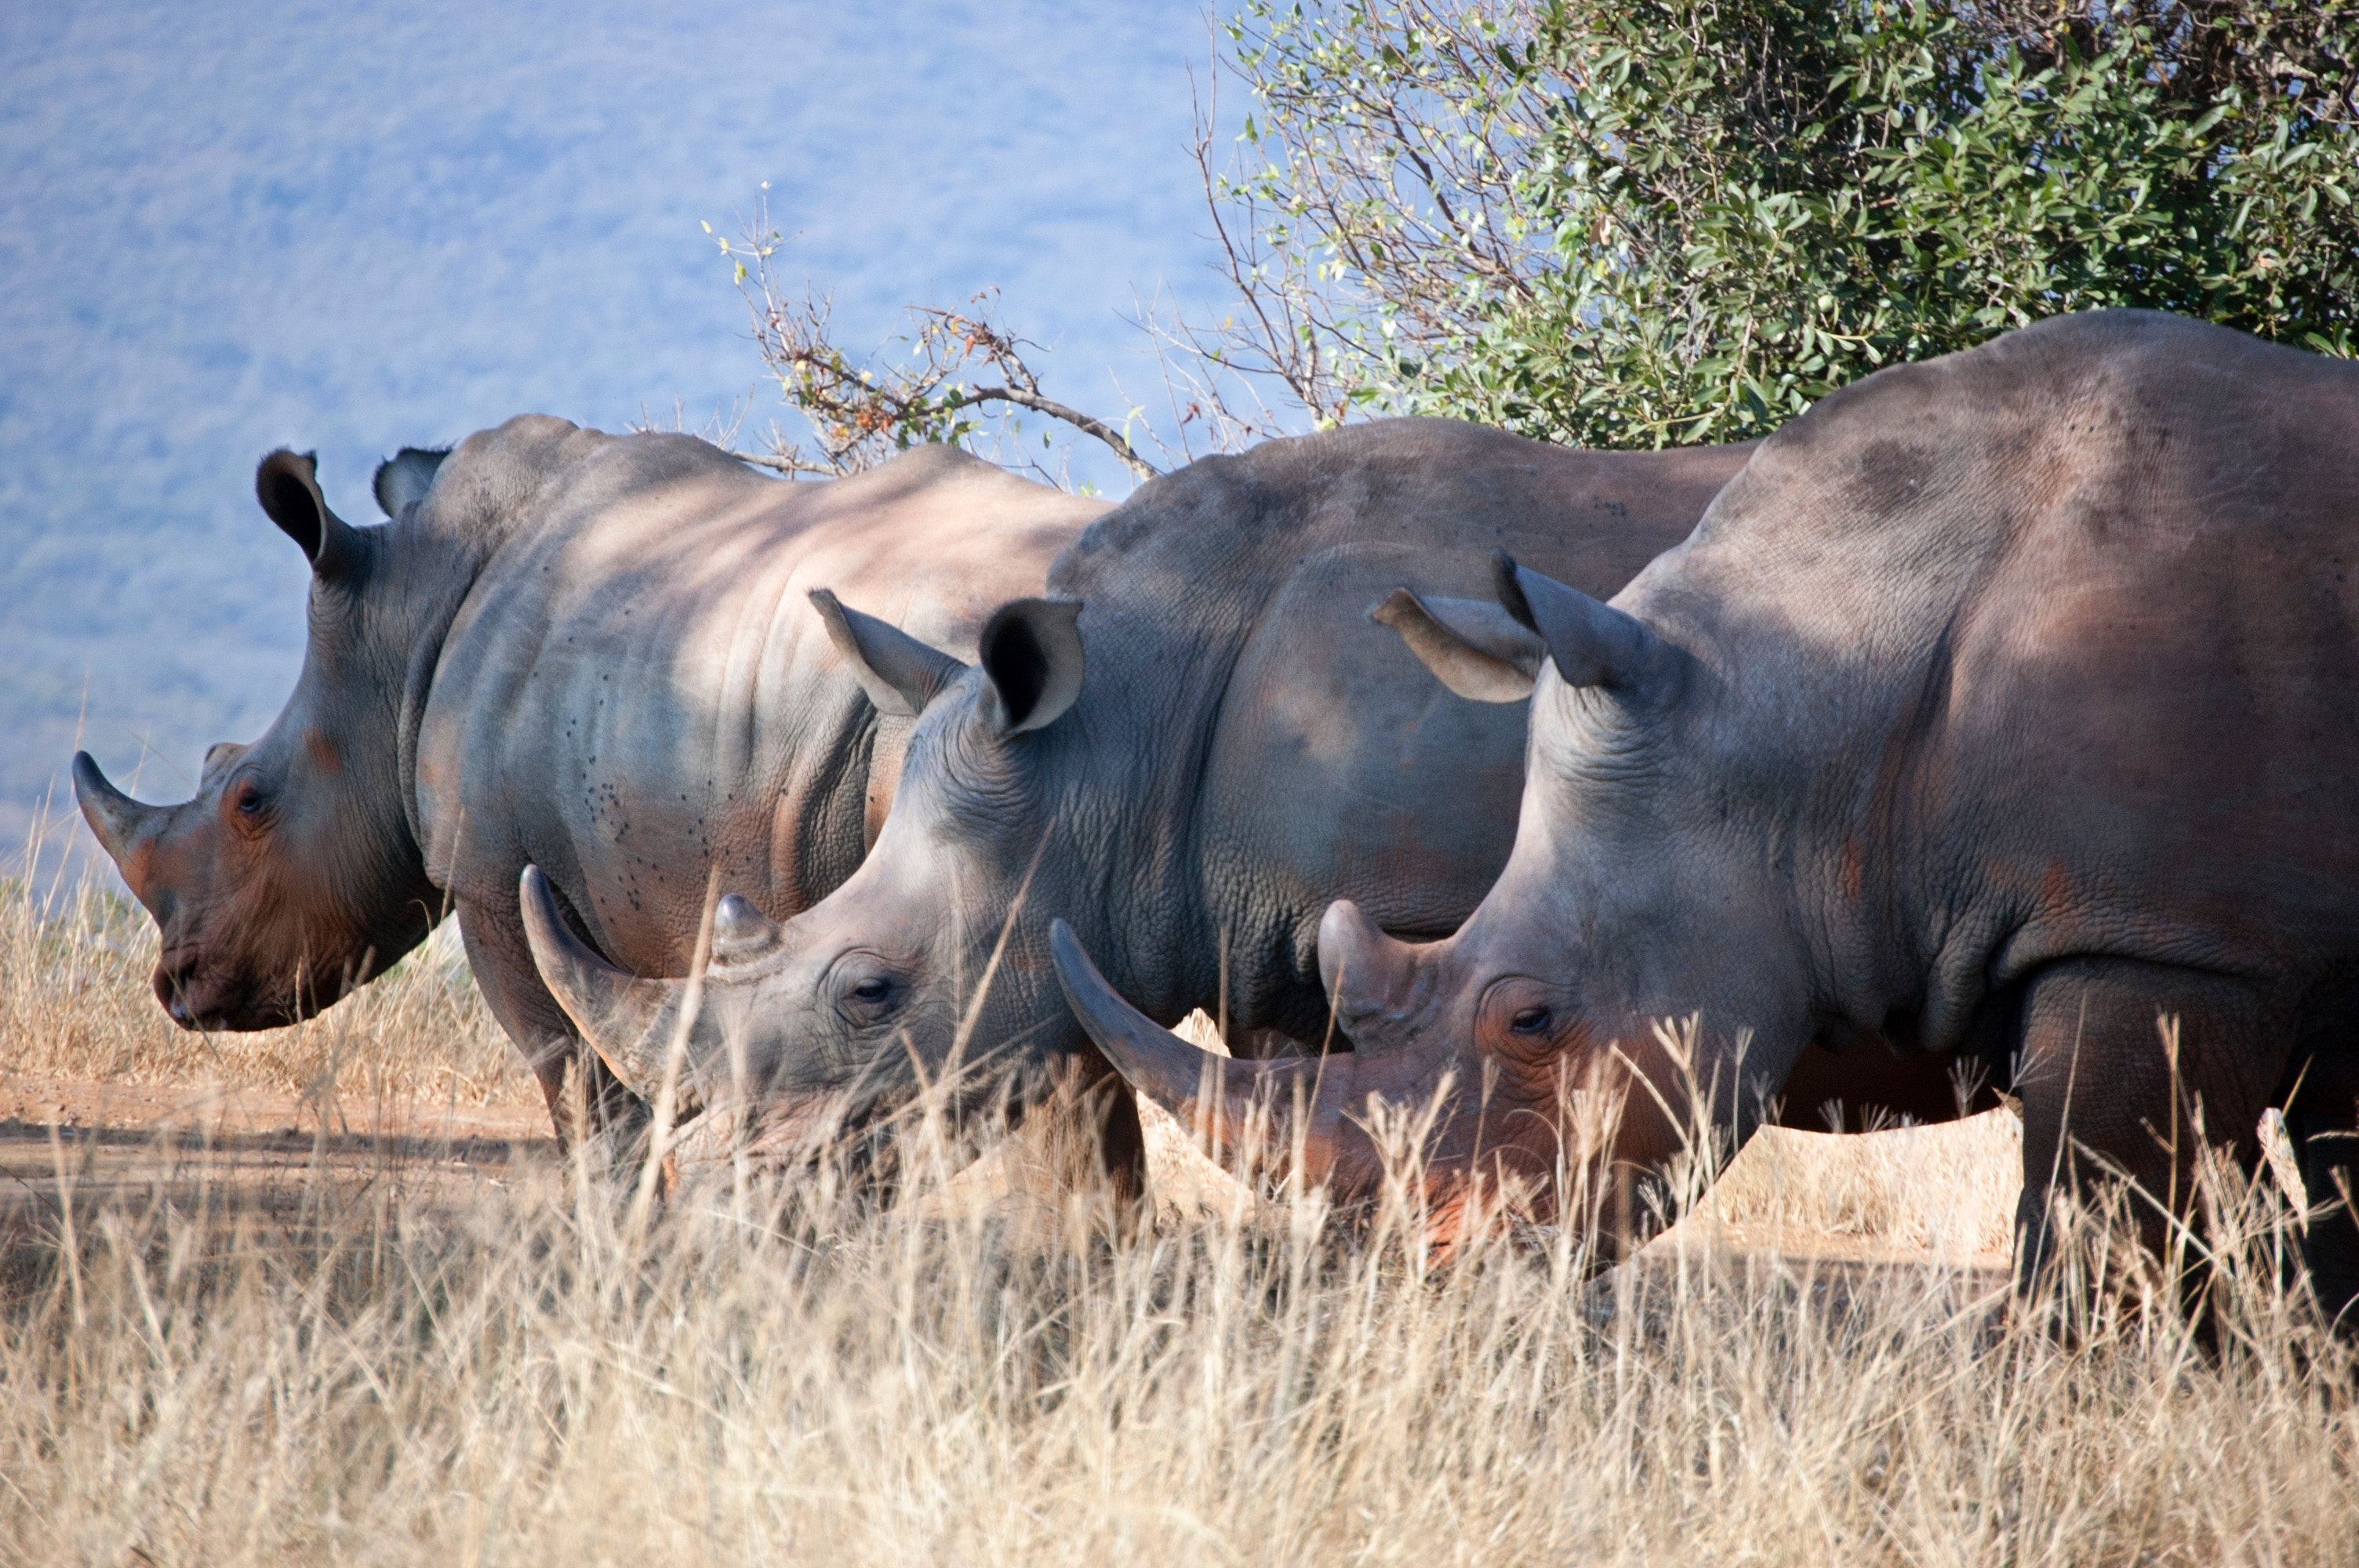 China rhino horn trade legalization